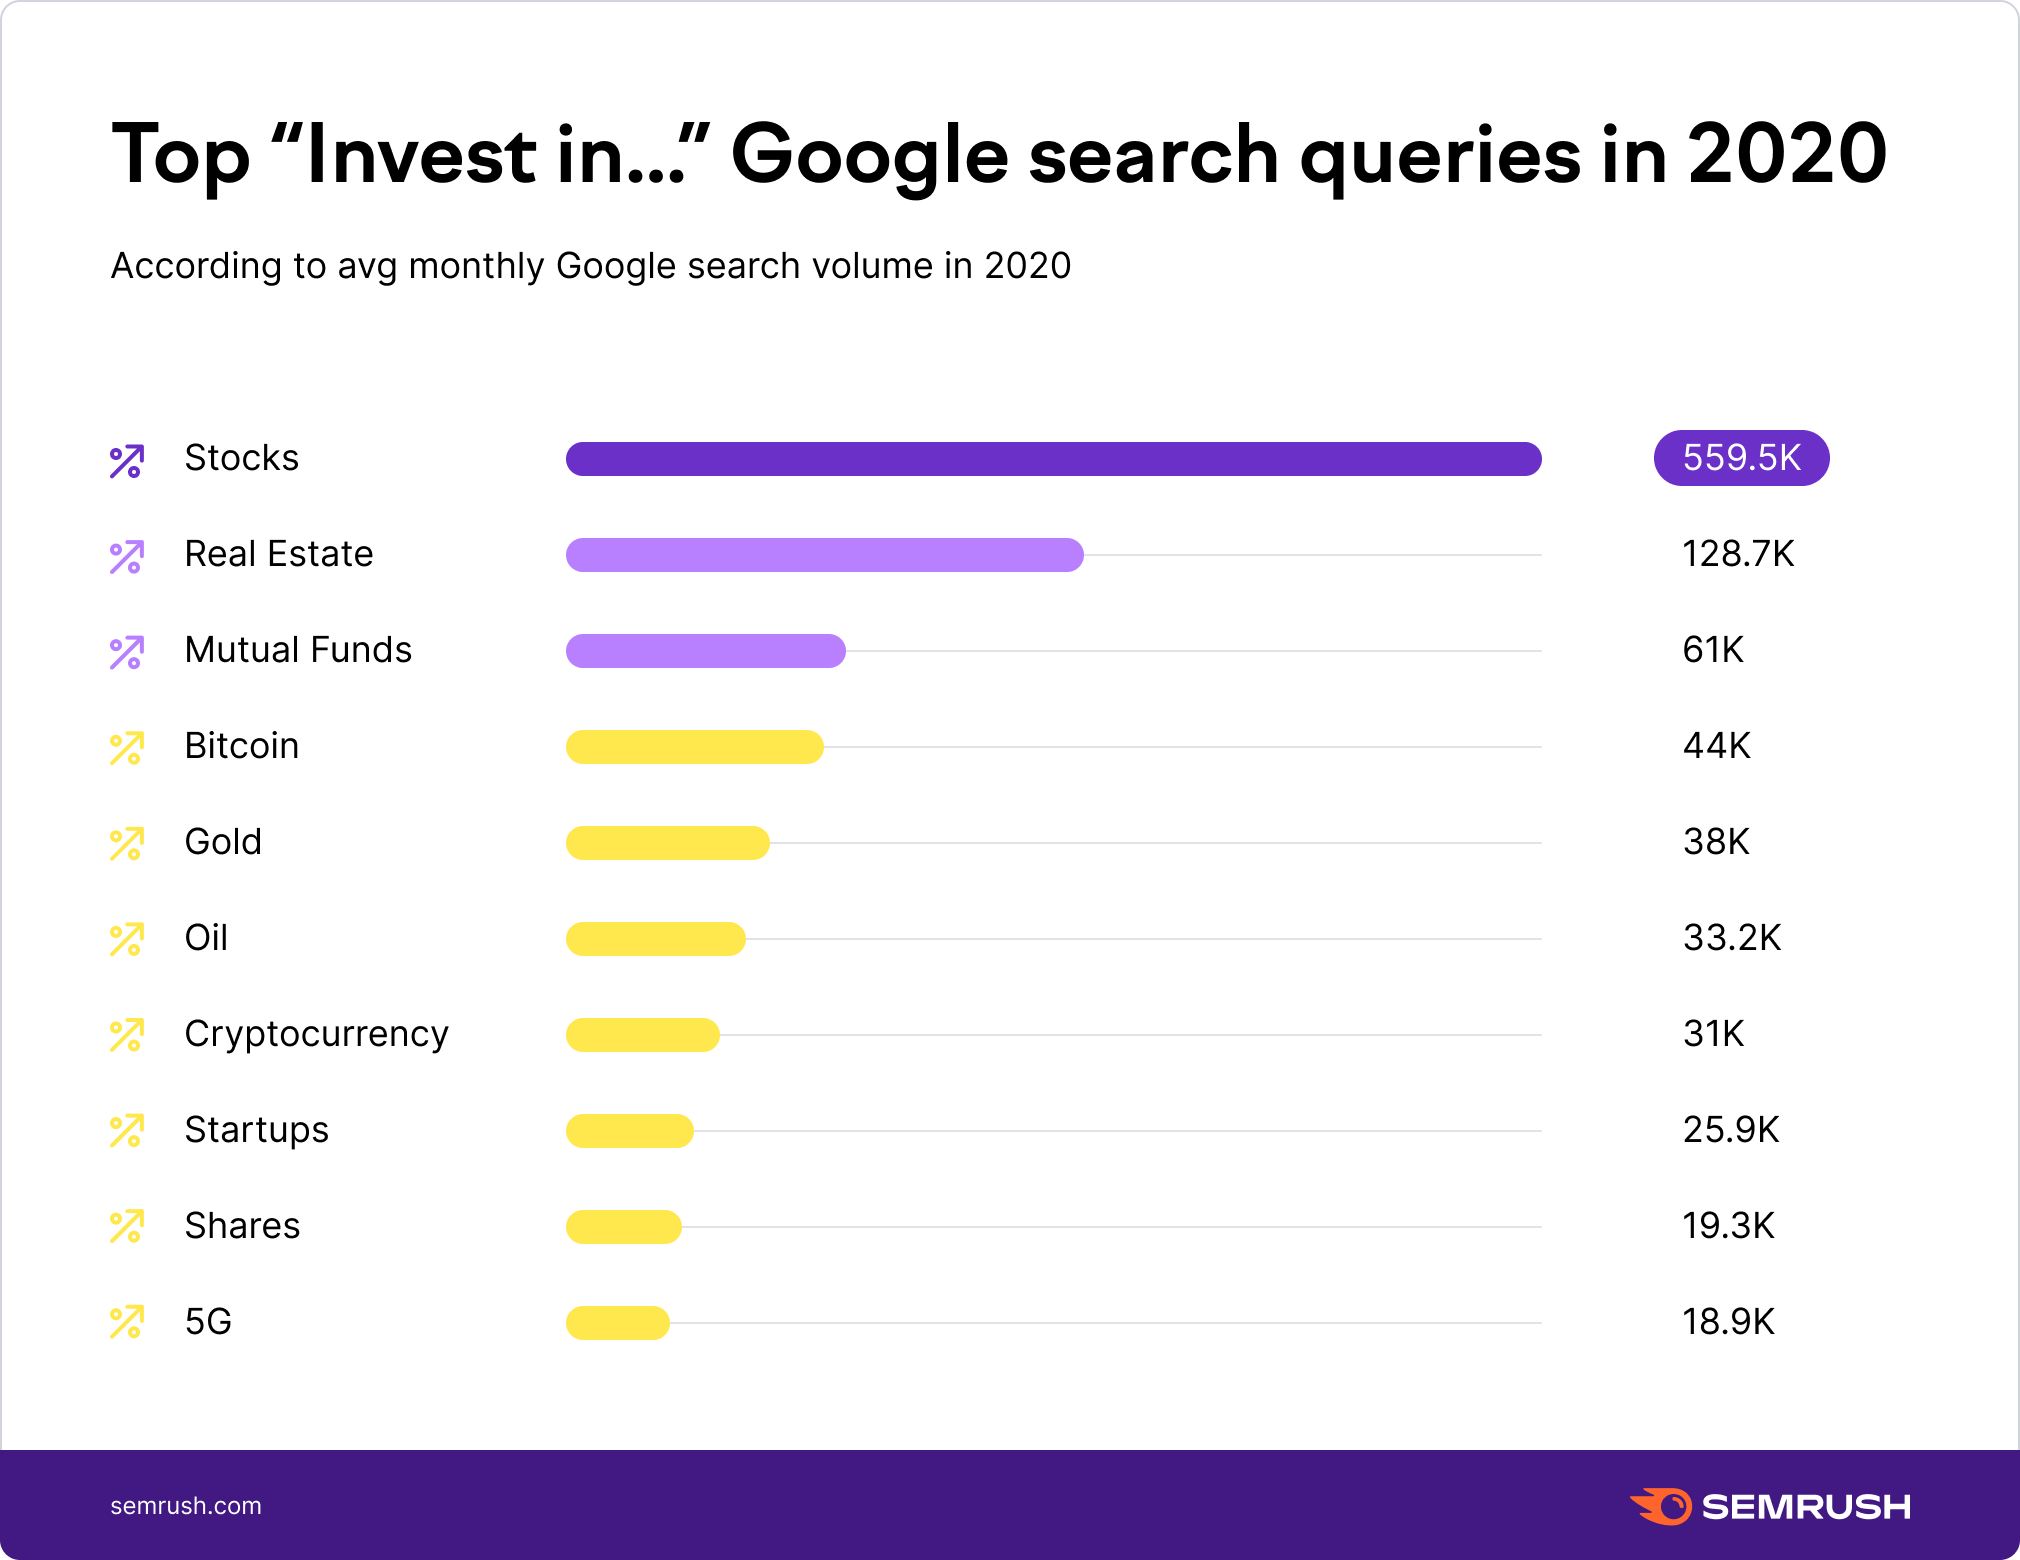 Top directions for investments in 2020 according to Google searches